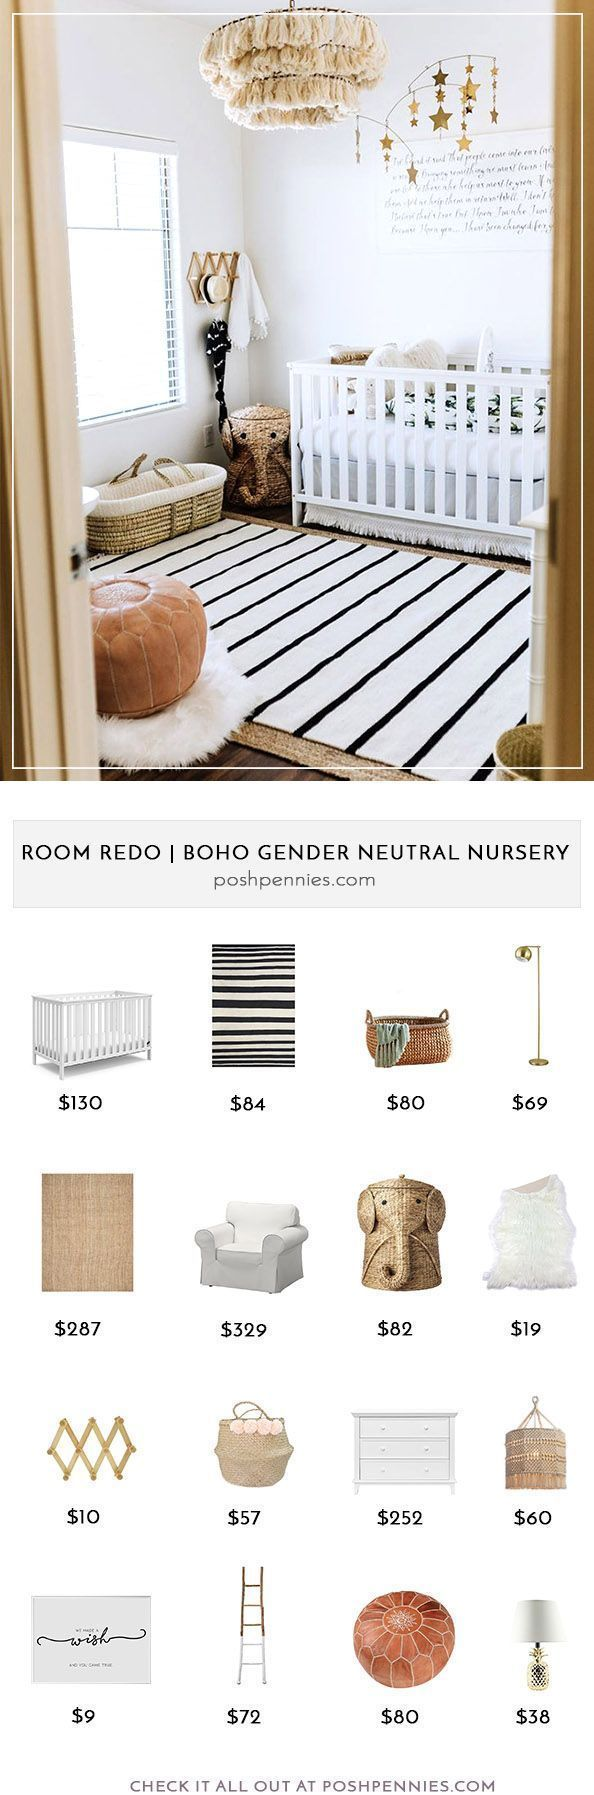 Holen Sie sich den Look: Boho Gender Neutral Nursery